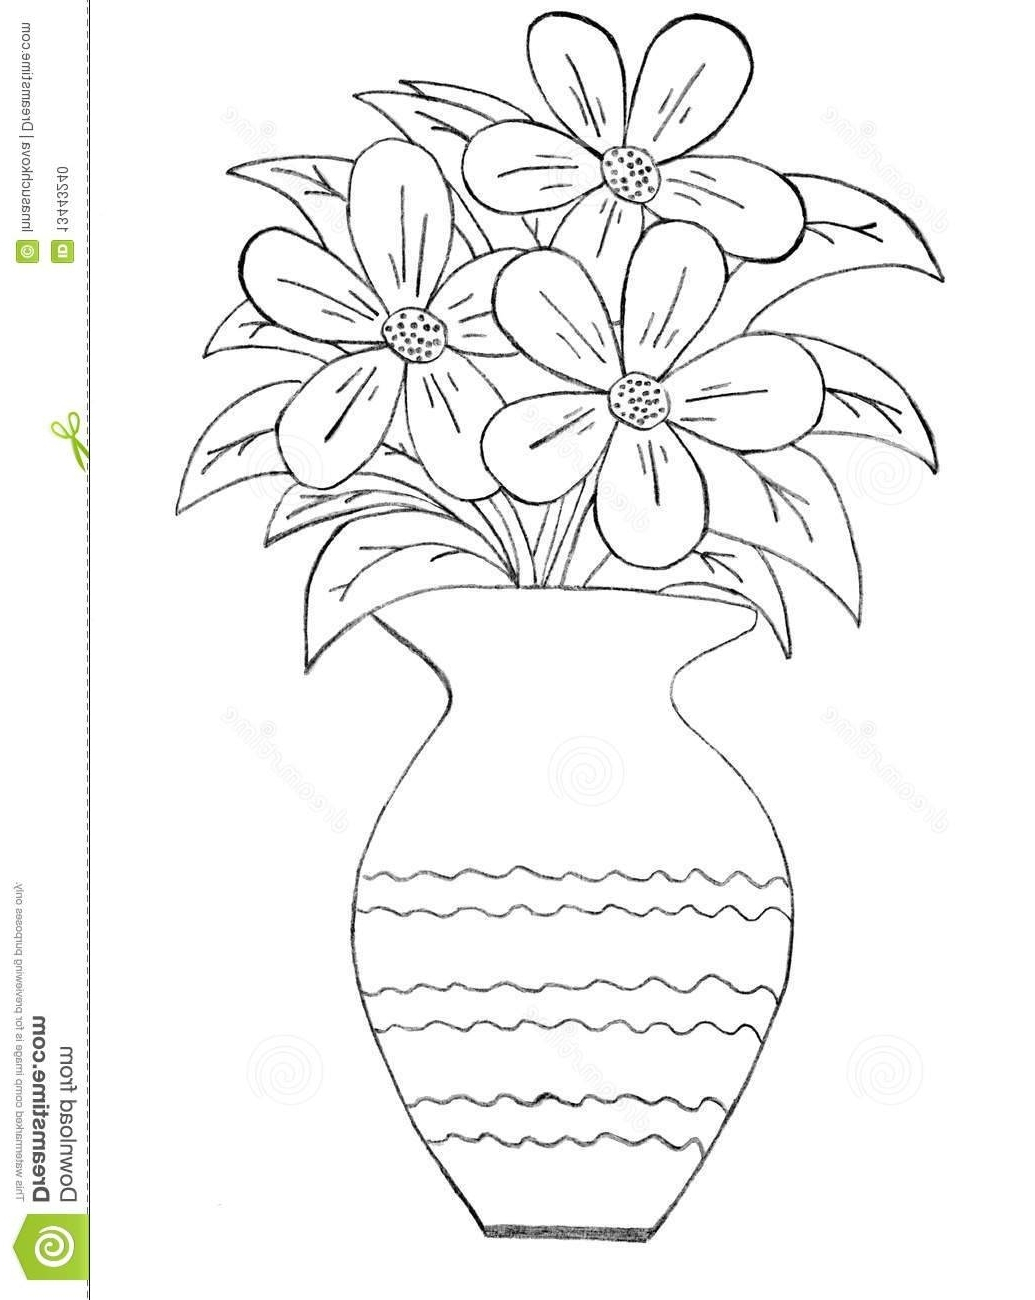 1035x1300 Vase Drawing Flower Drawn Sunflower Vase Drawing